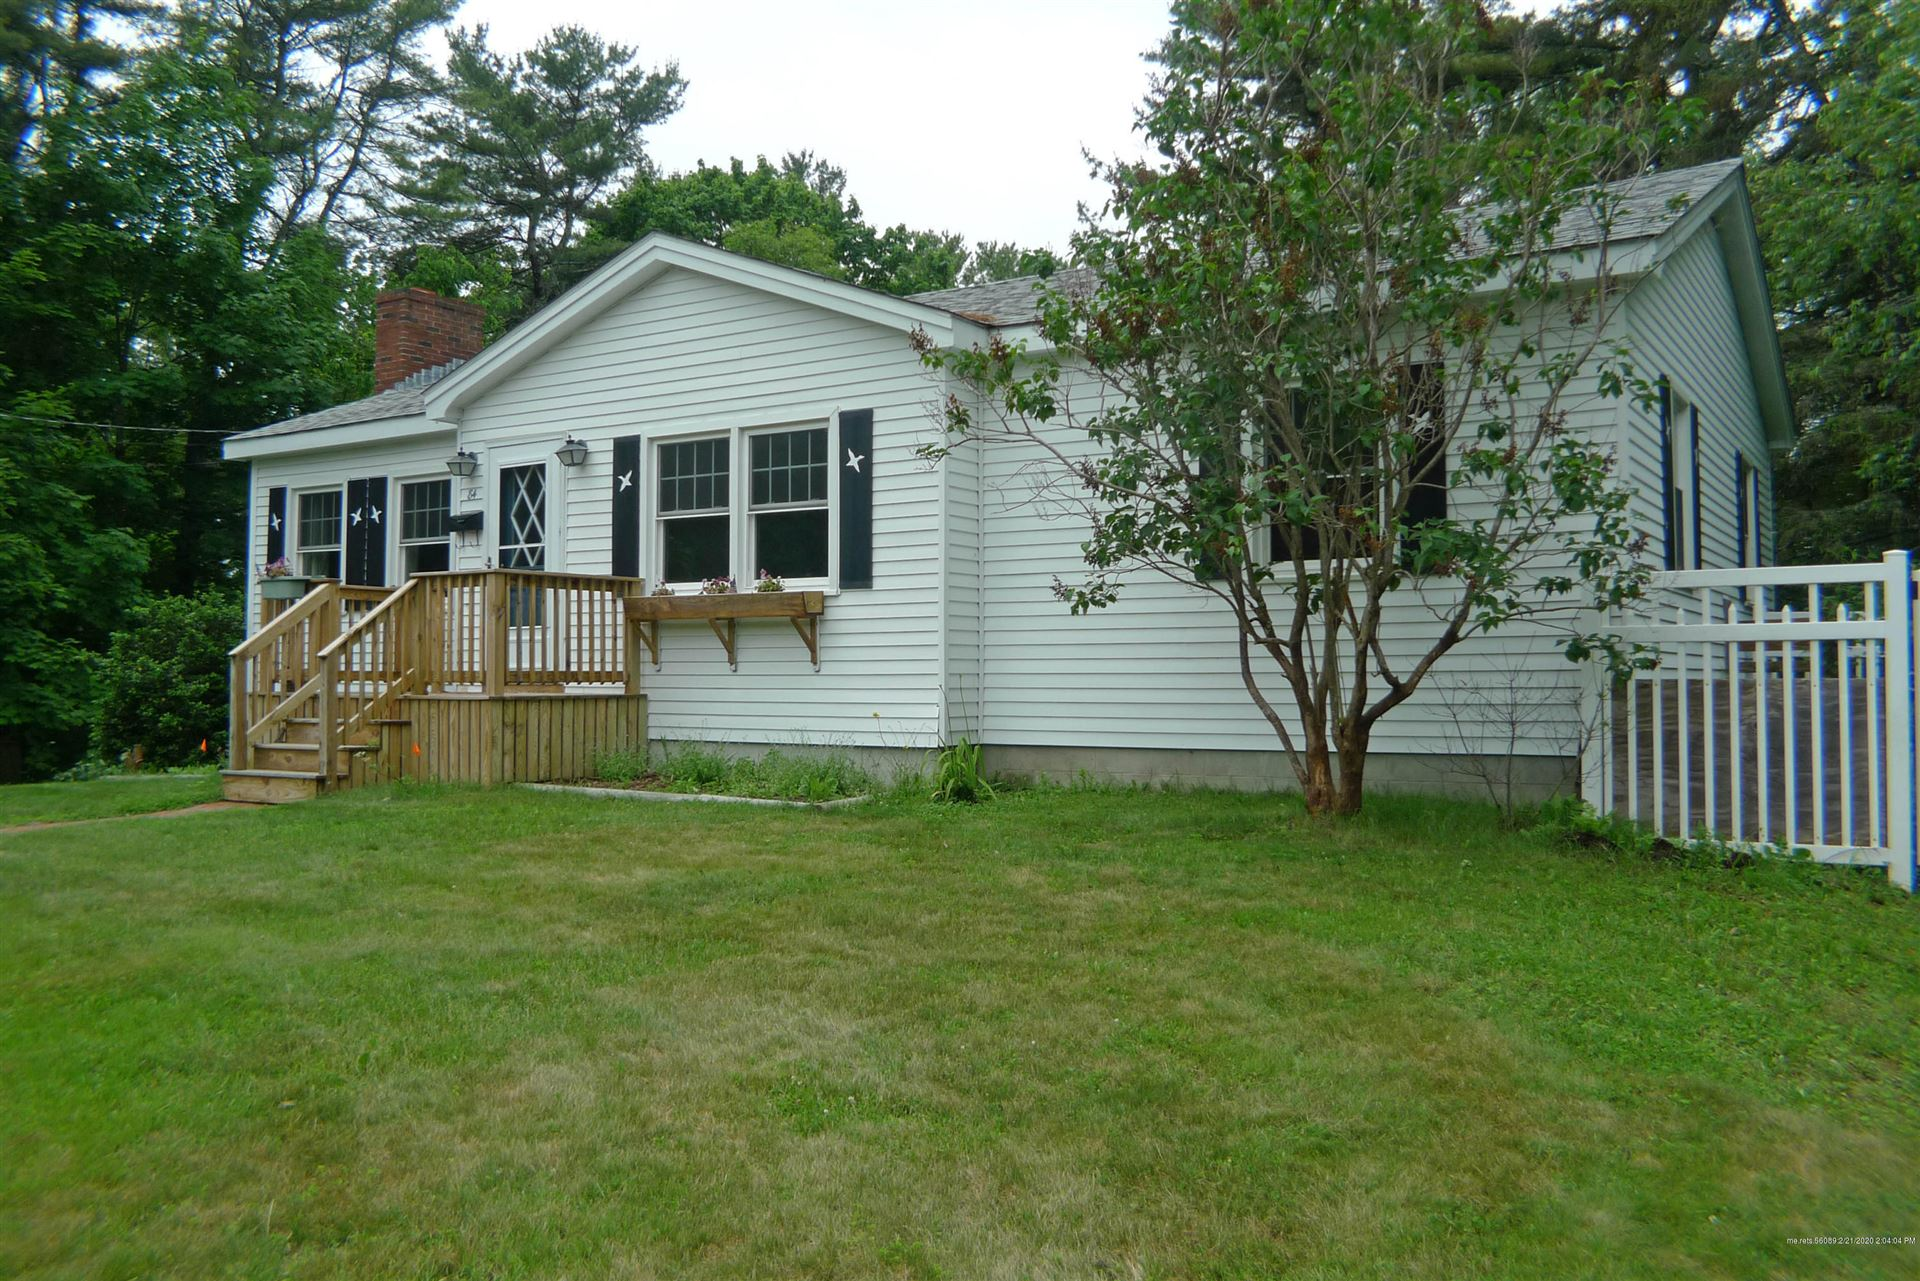 Photo of 84 Kenney Field Drive, Boothbay Harbor, ME 04538 (MLS # 1445048)